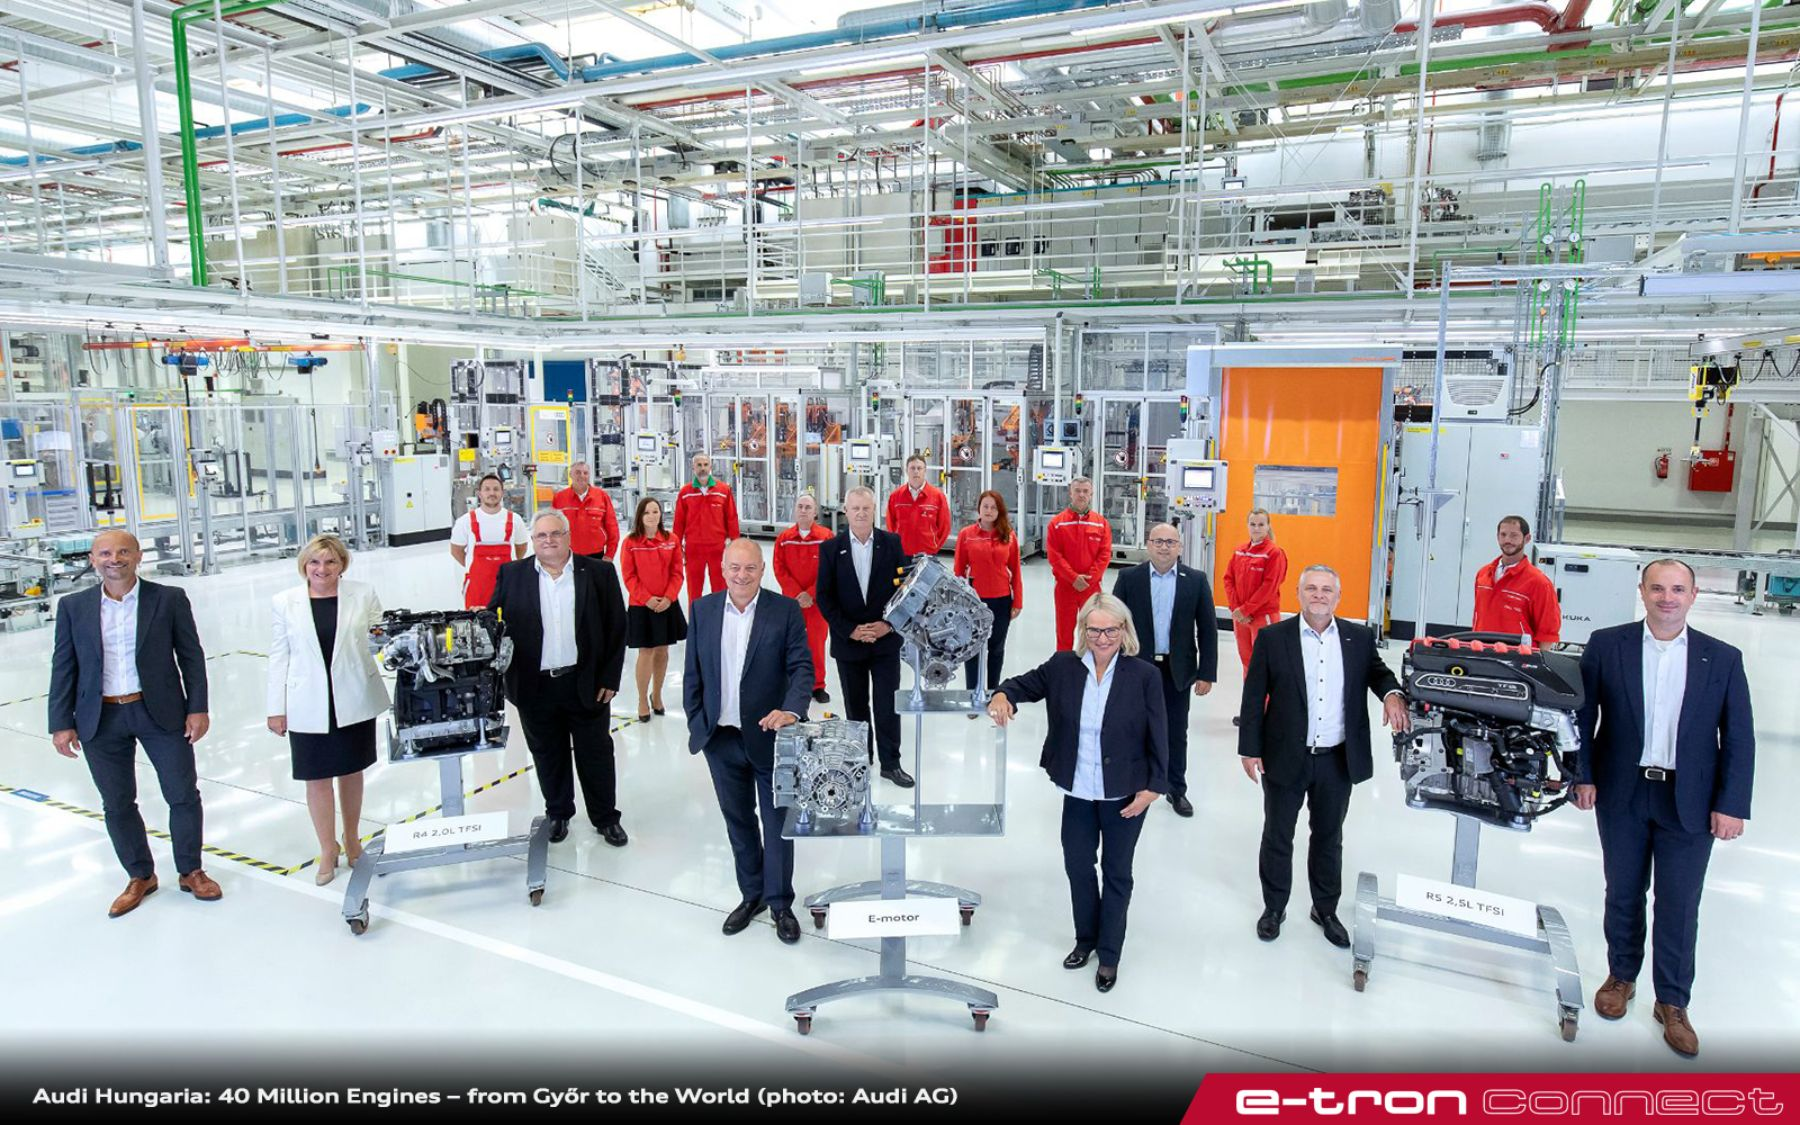 Audi Hungaria: 40 Million Engines – from Győr to the World